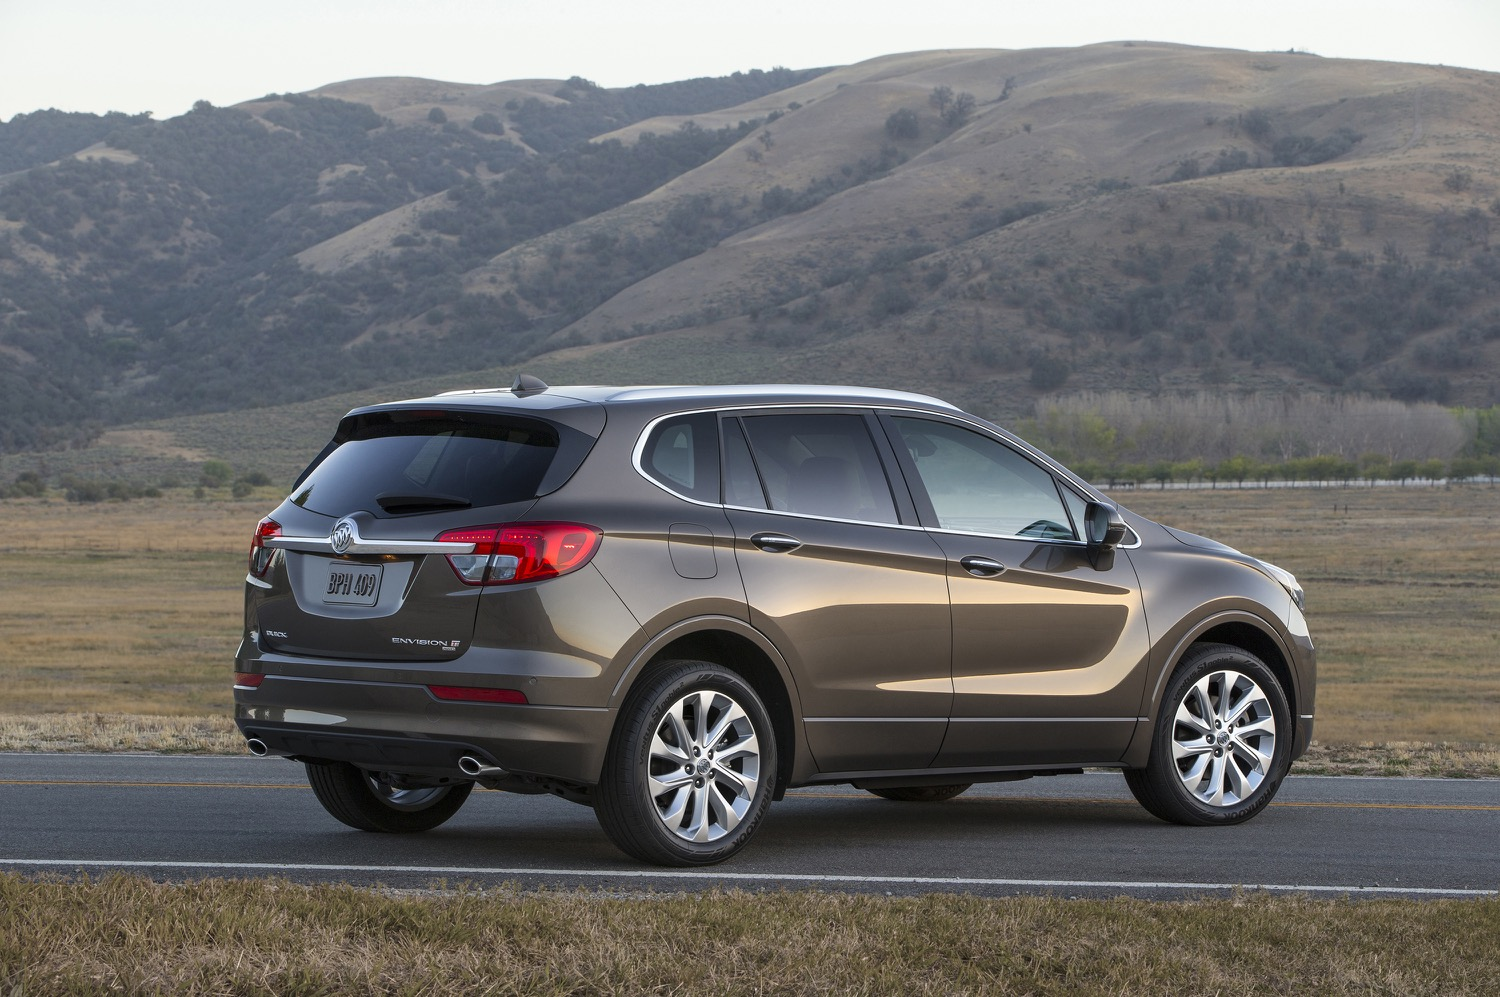 2017 Buick Envision Photos Informations Articles 2002 Chevy Trailblazer Stereo Harness Free Download Wiring Diagram 1